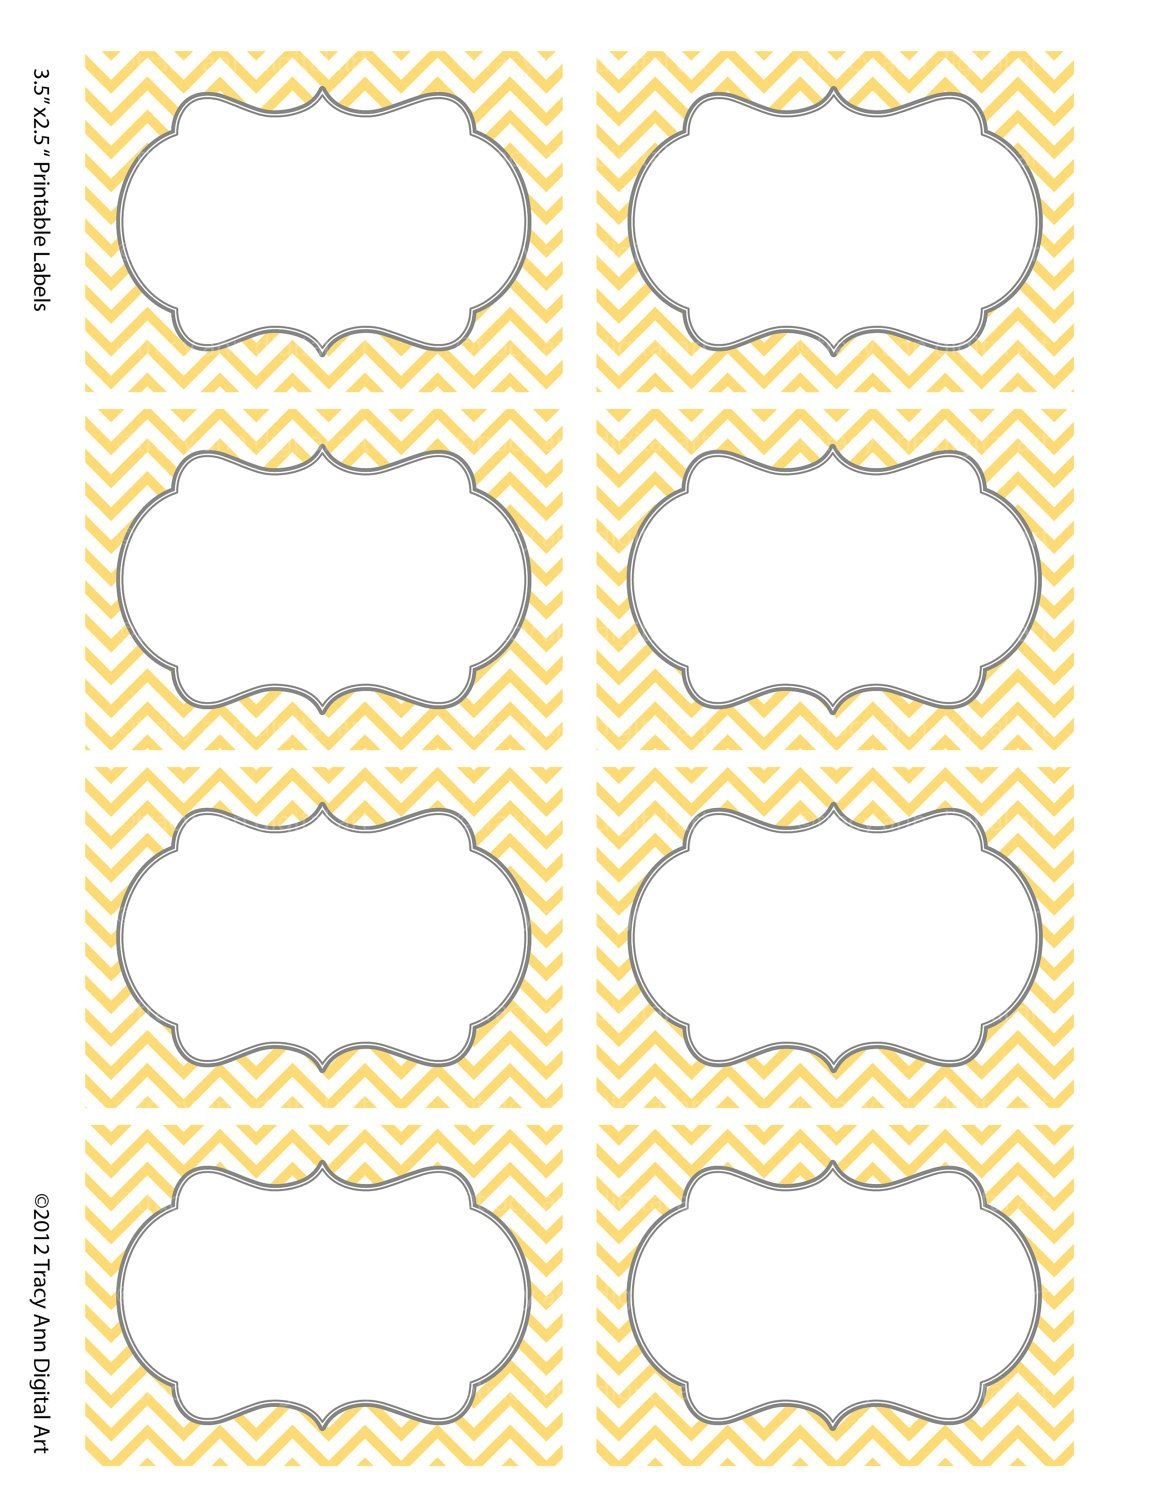 Chevron Labels Print Your Own Labels Yellow And Grey | Printables - Free Printable Chevron Labels